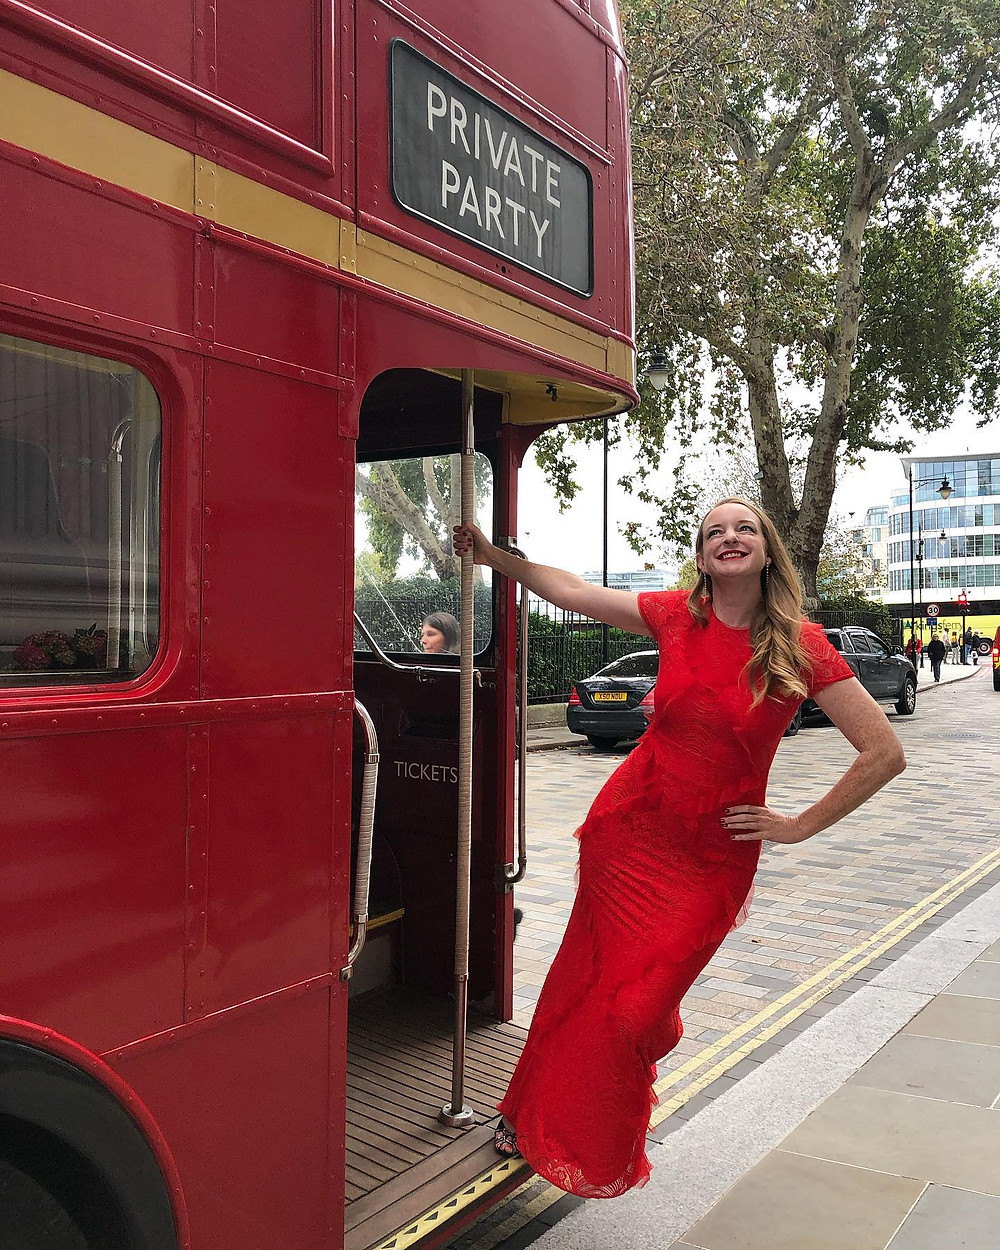 Nicola Chilton in red dress on a traditional red London bus